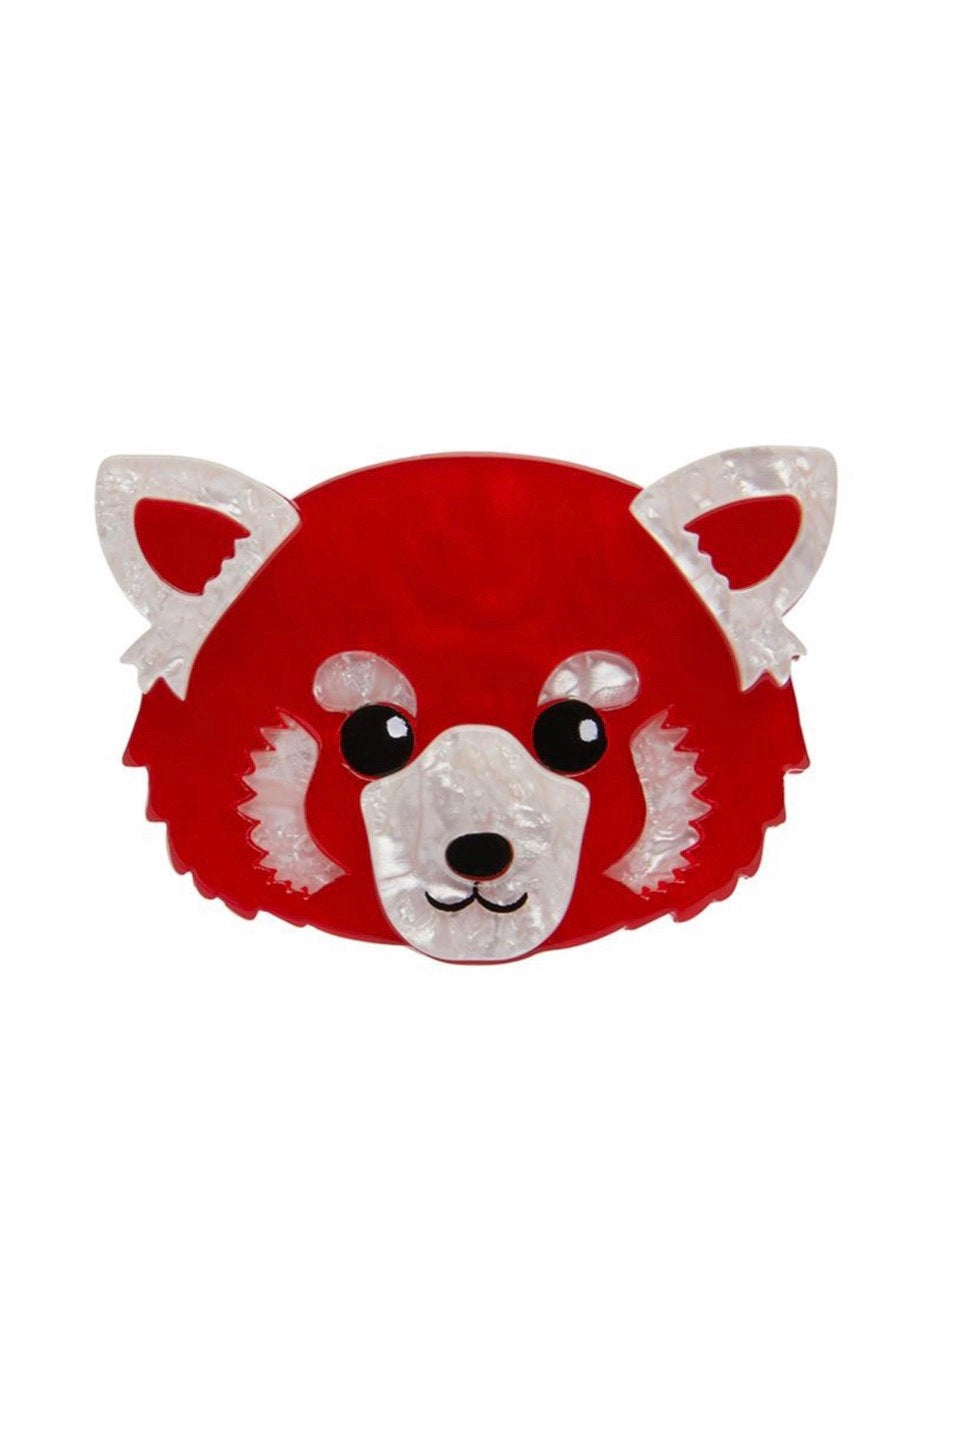 Lesser Rusty Red Panda Brooch by Erstwilder